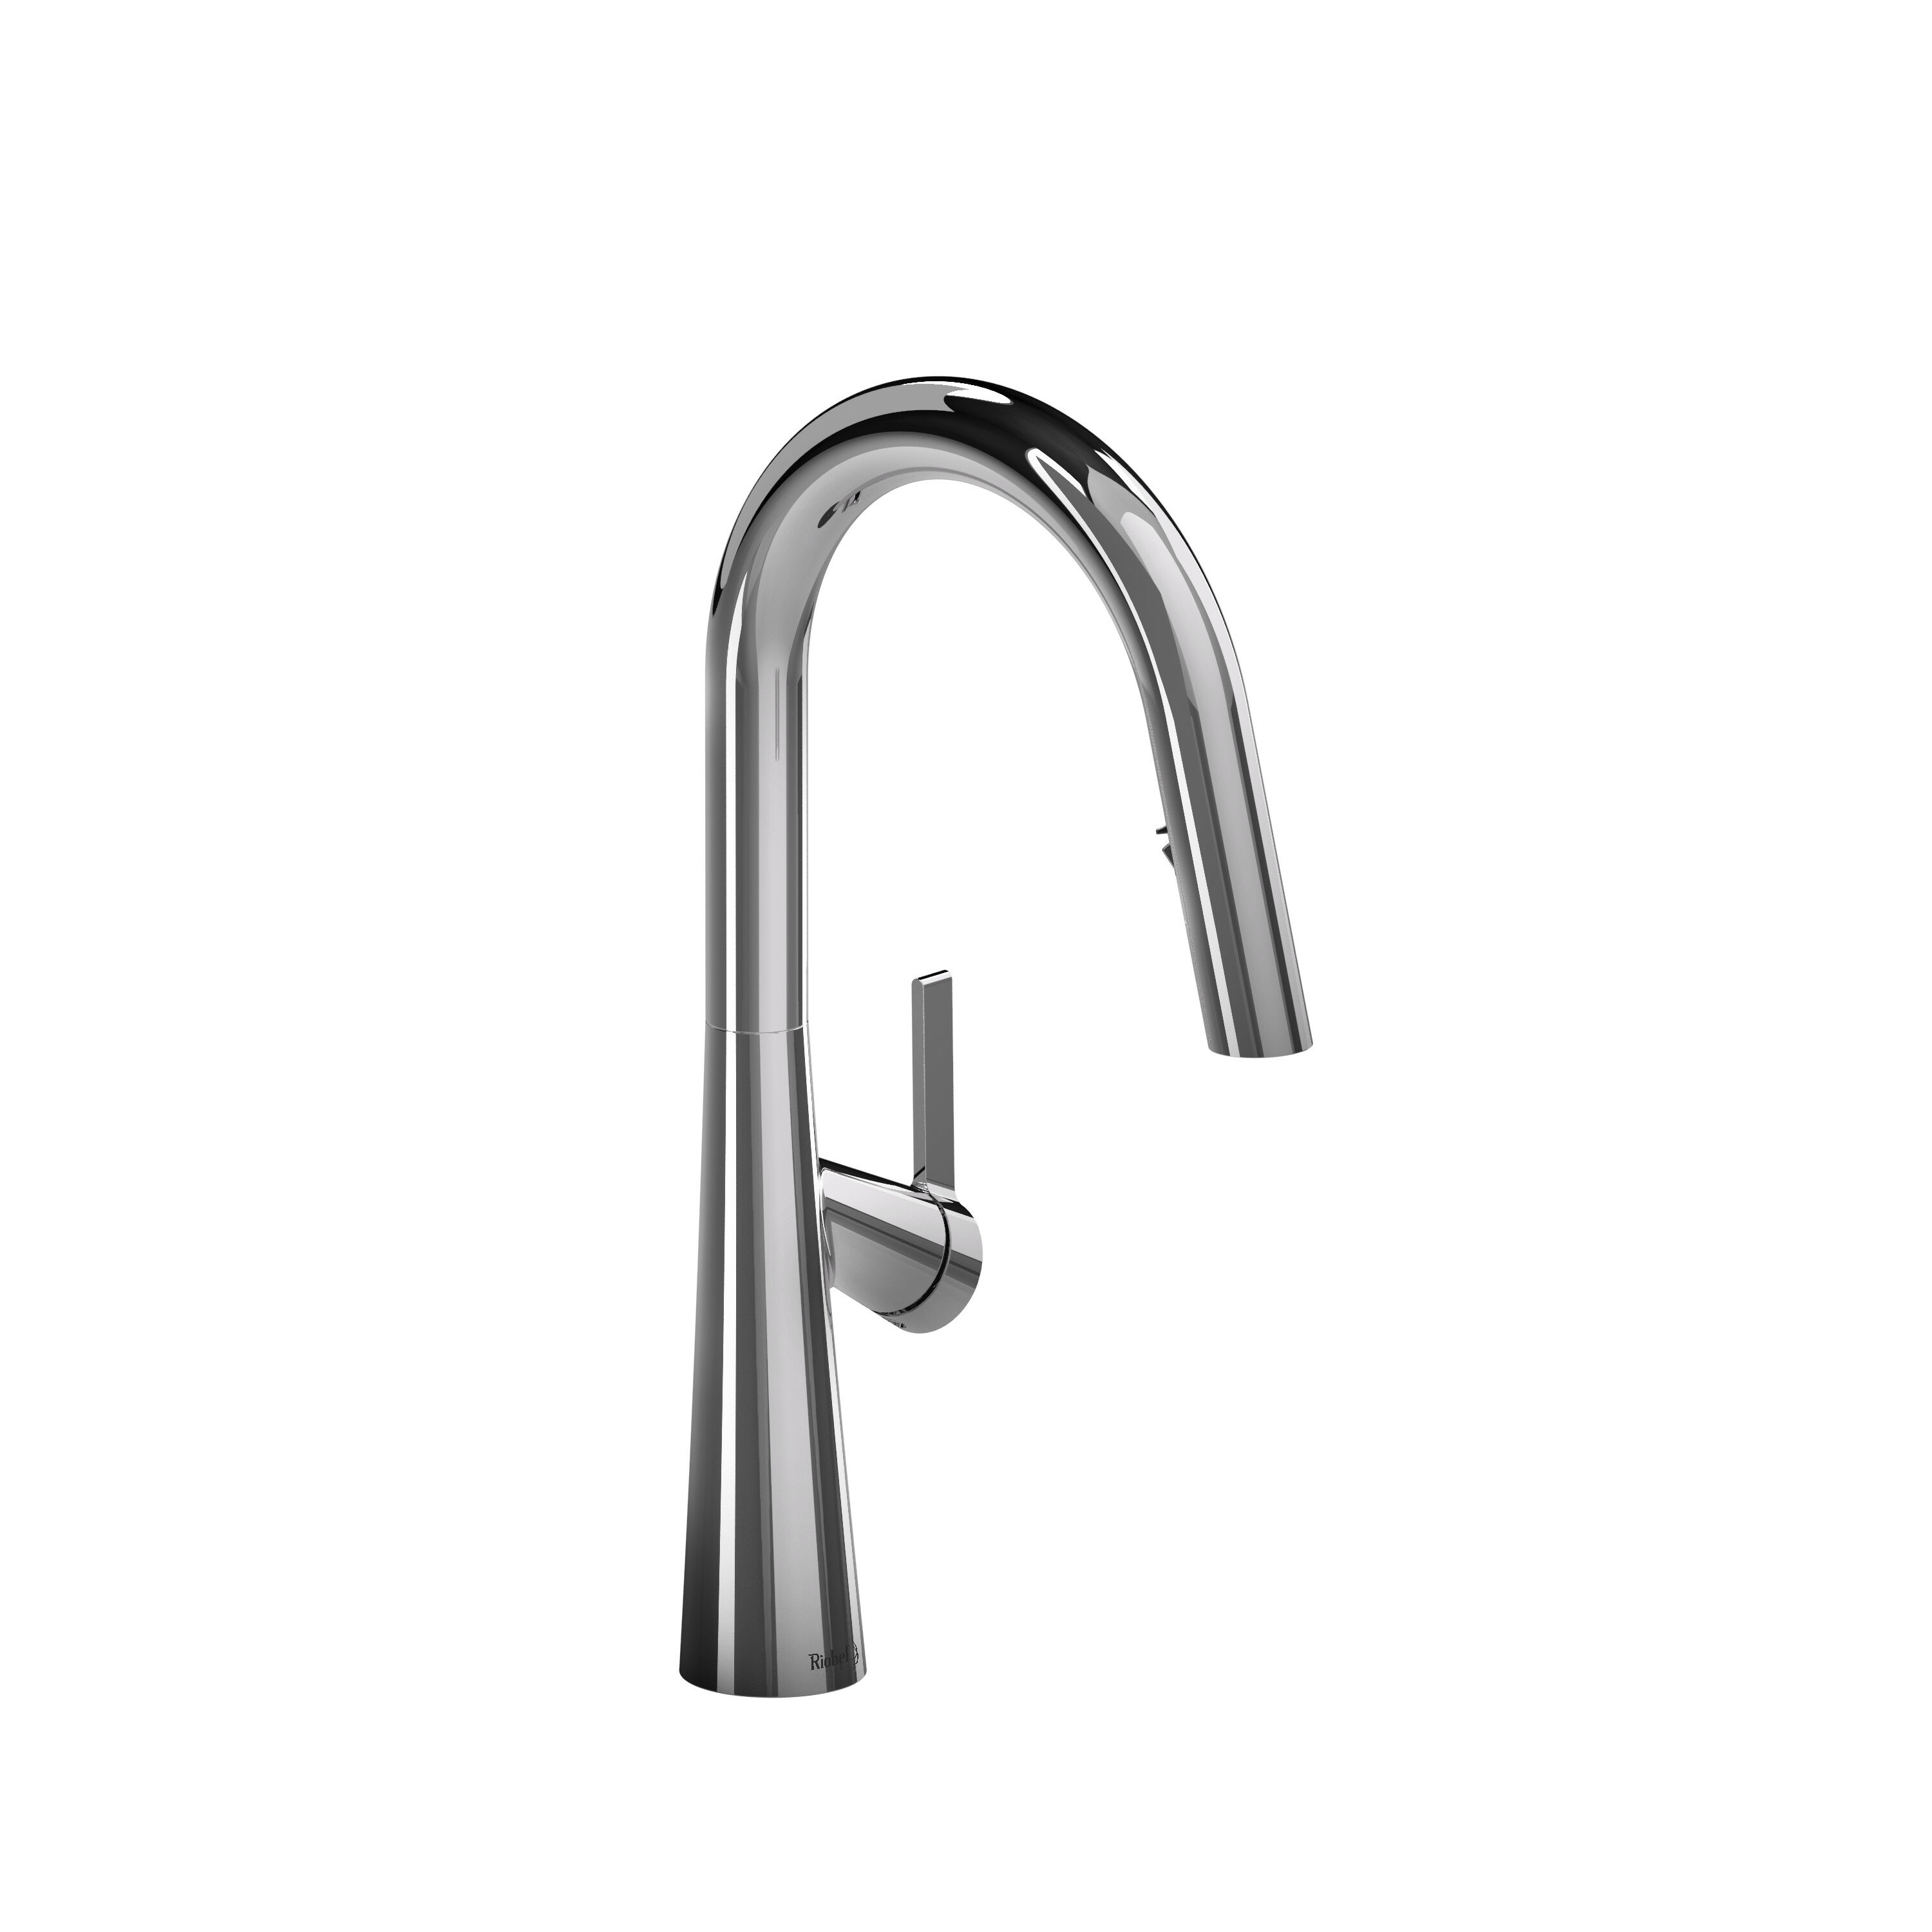 Ludik Pull Down Single Handle Kitchen Faucet With Boomerang Fully Retractable Spray Technology Allmodern